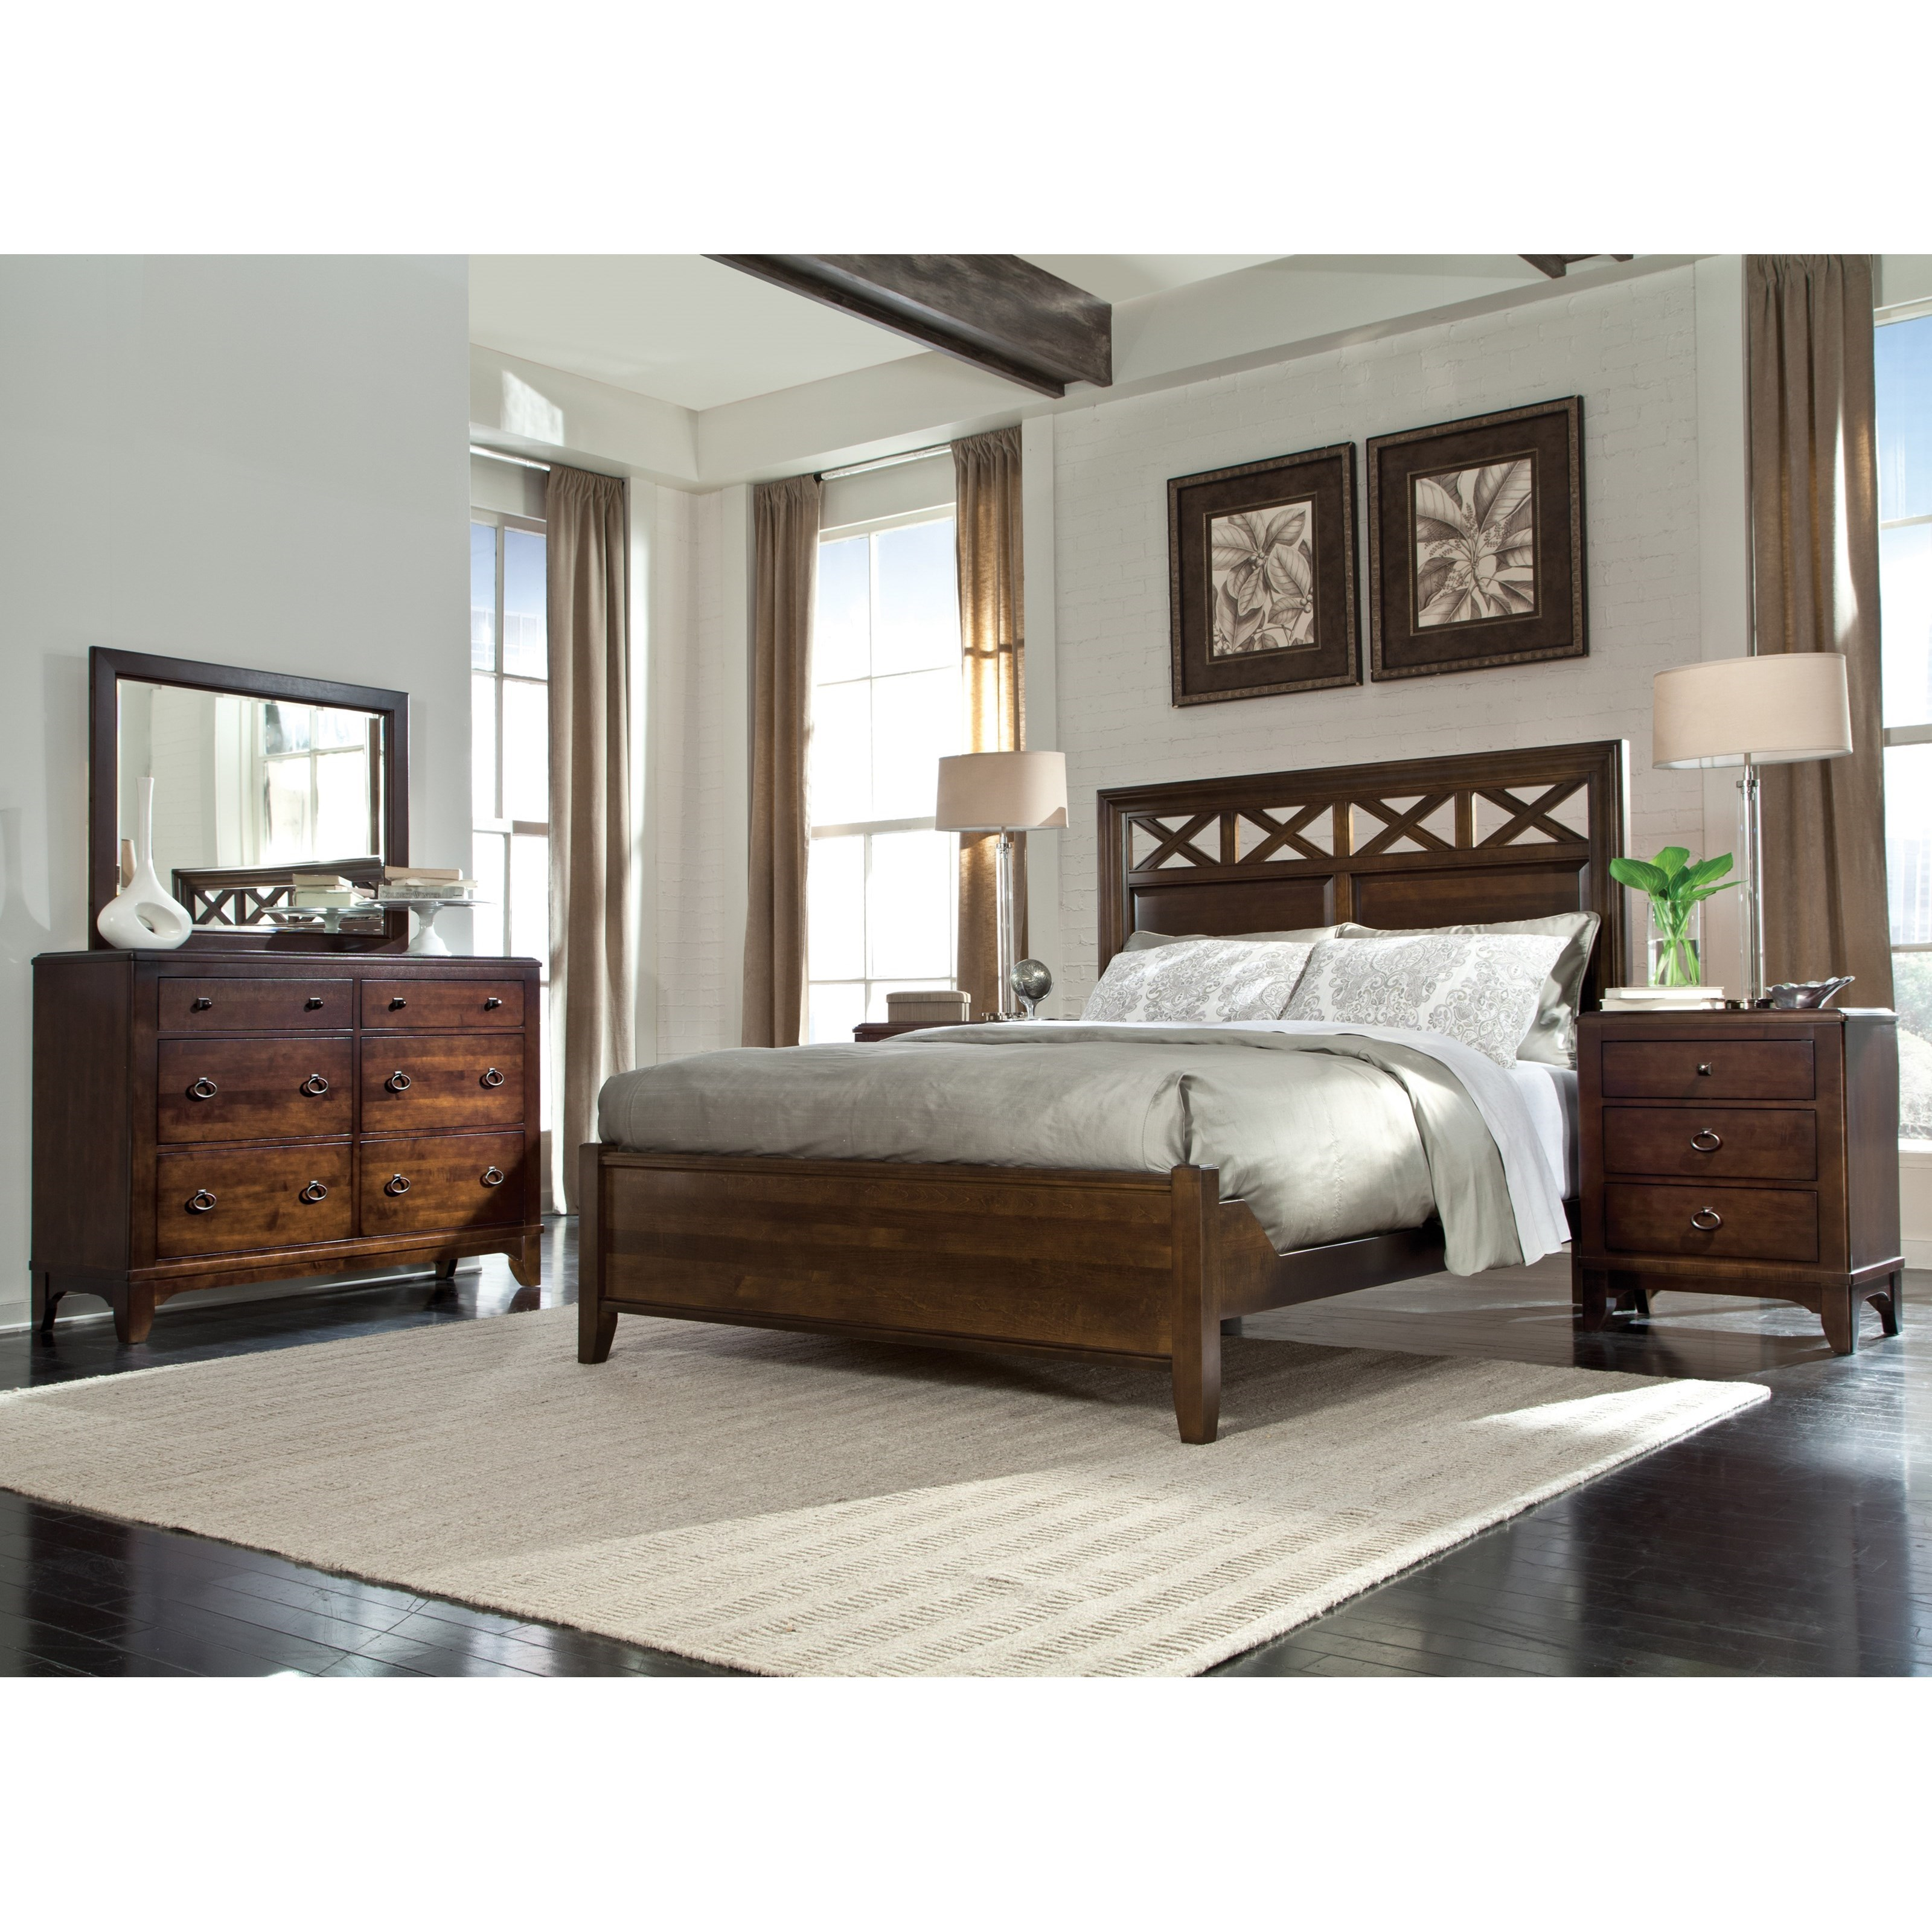 Glen Terrace Queen Bedroom Group by Durham at Stoney Creek Furniture